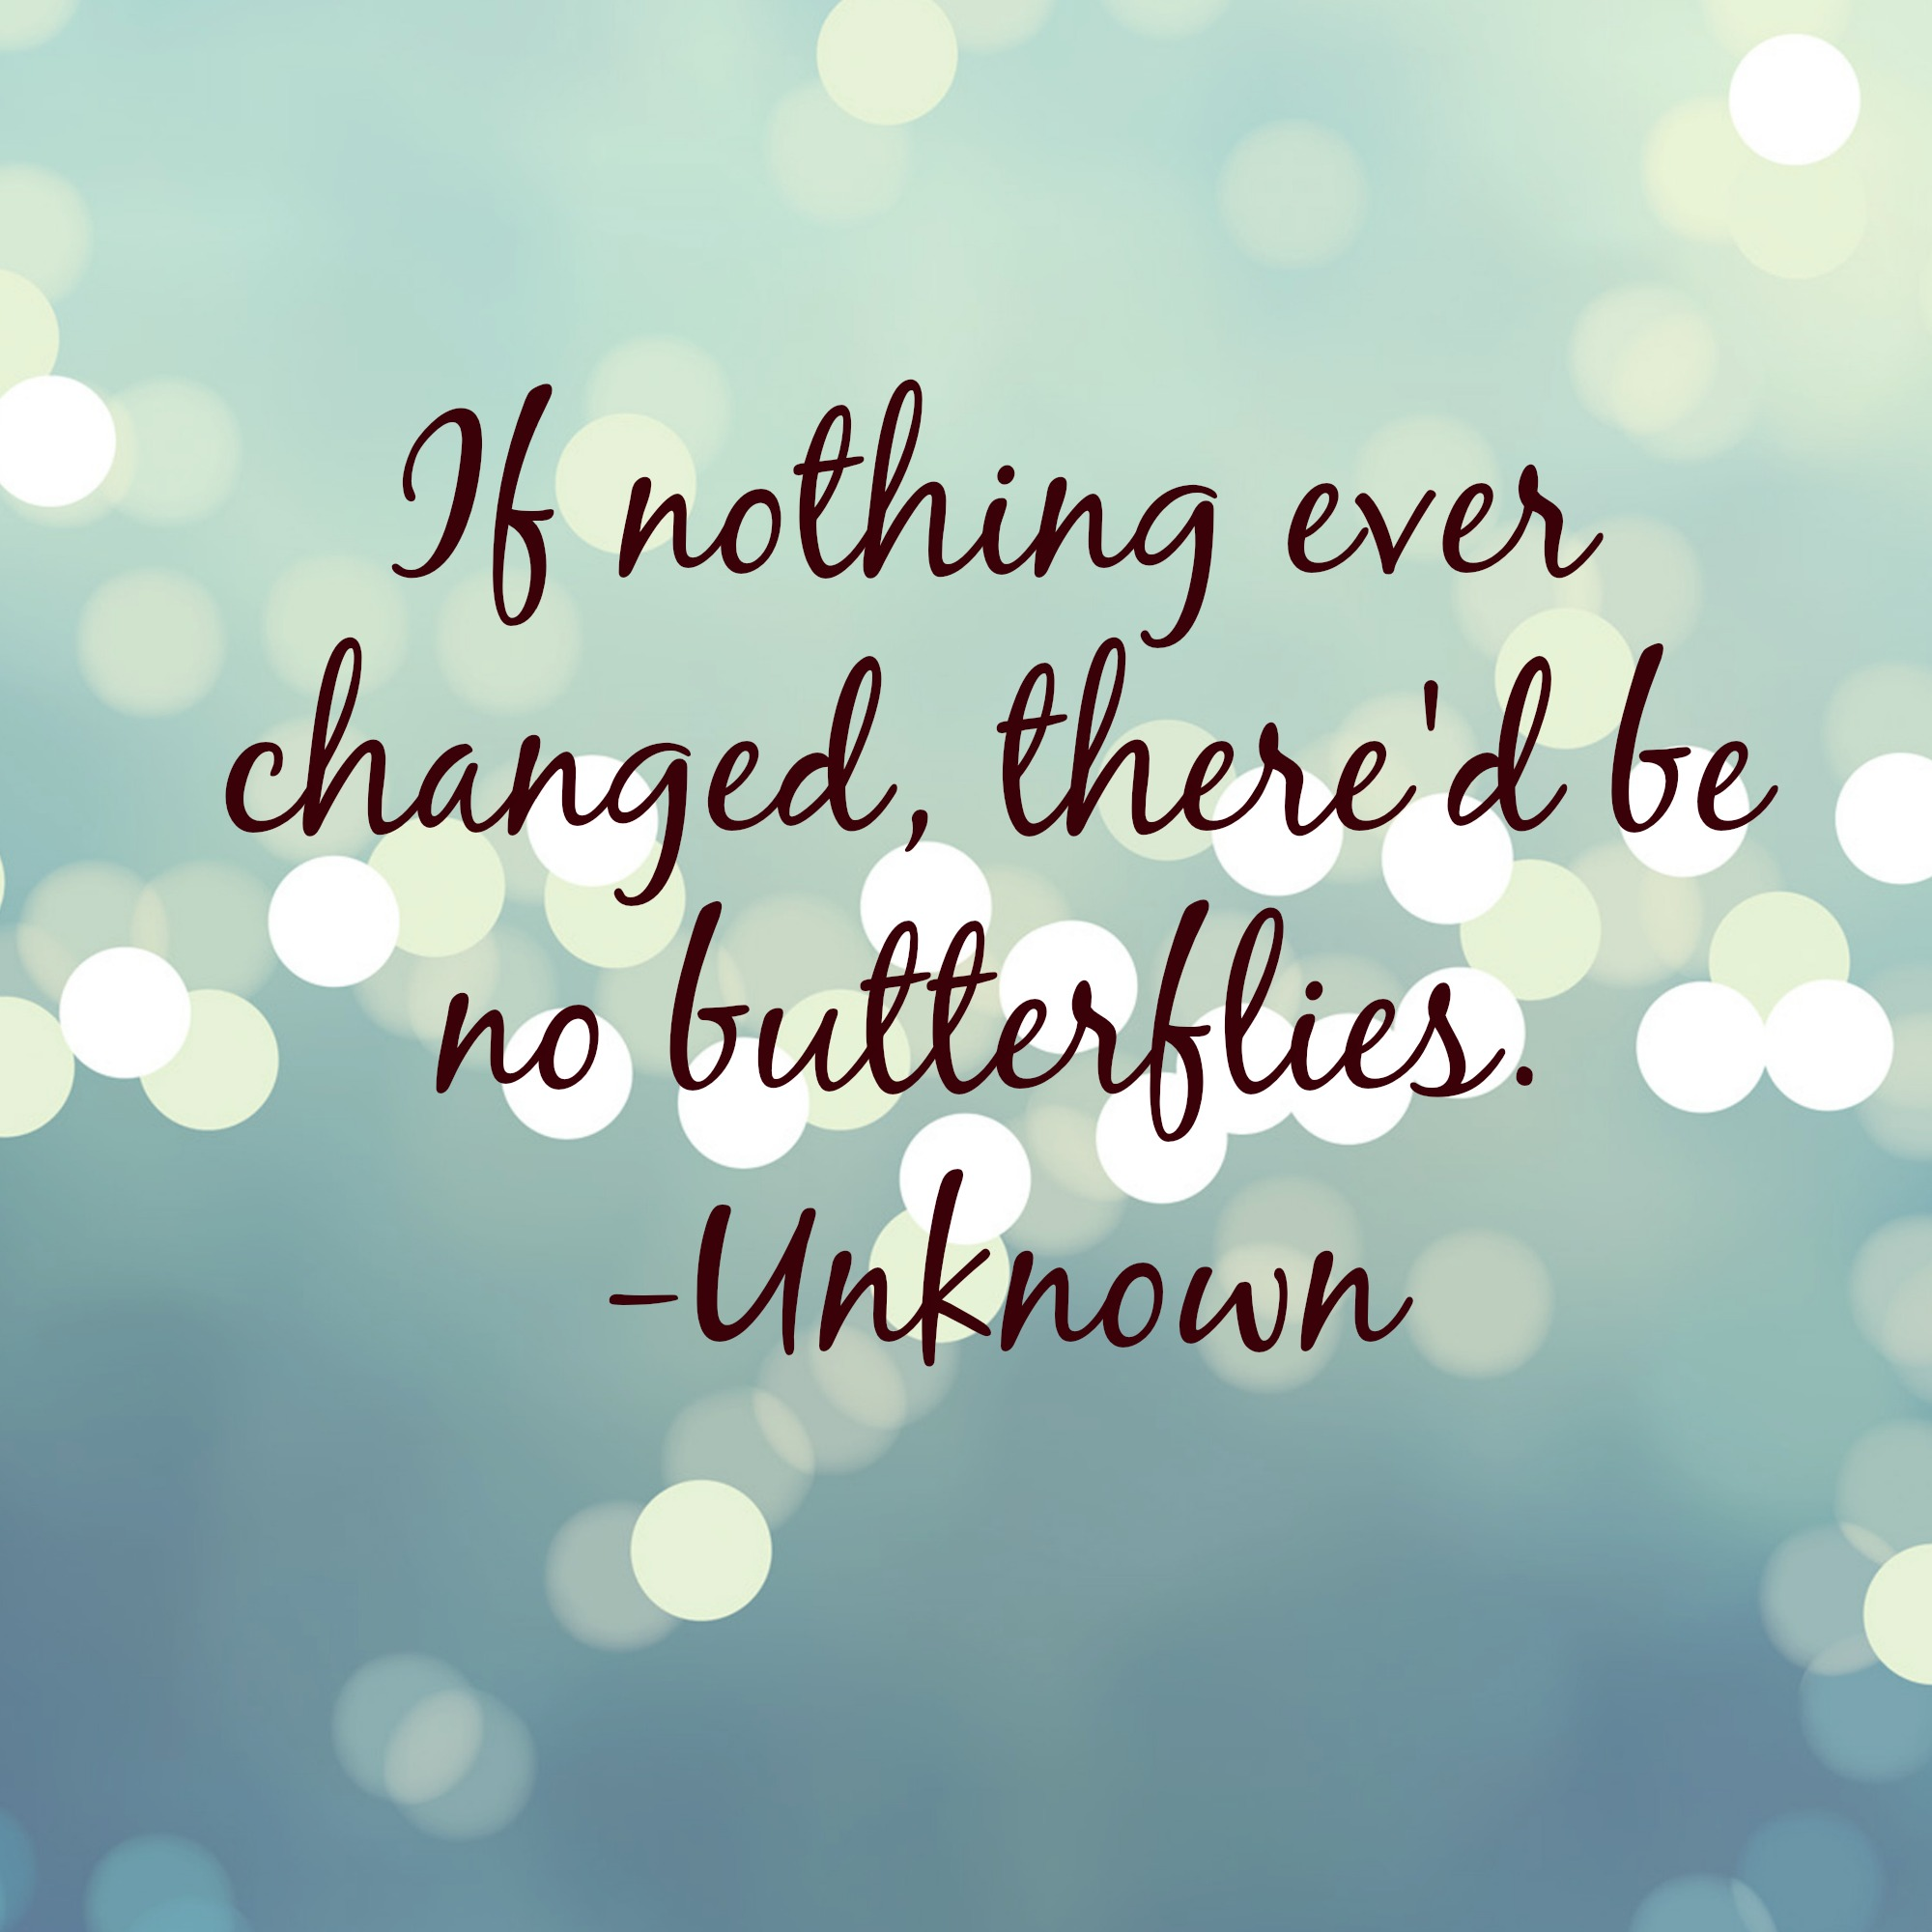 Spiritual Quotes About Life Changes: Quotes On Change And Growth. QuotesGram